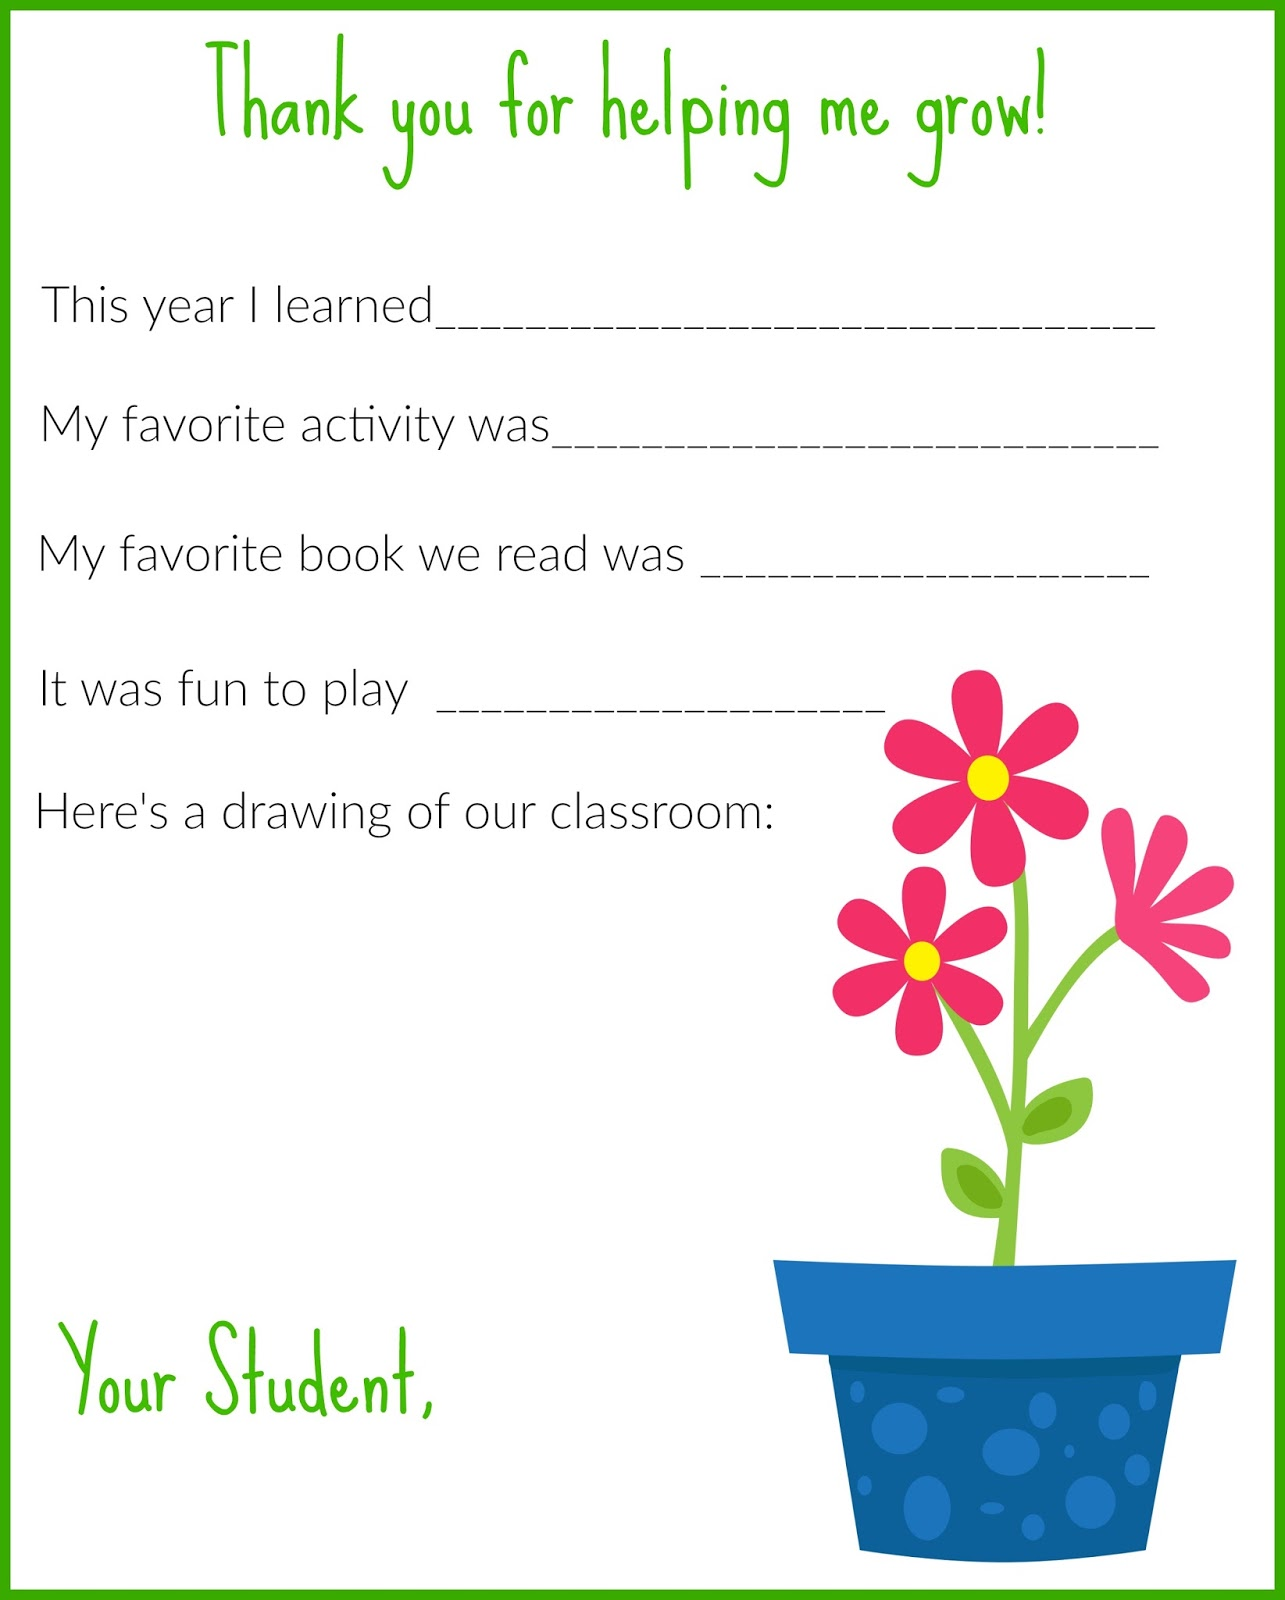 A Thank You Letter For Teachers Free Printable  The Chirping Moms